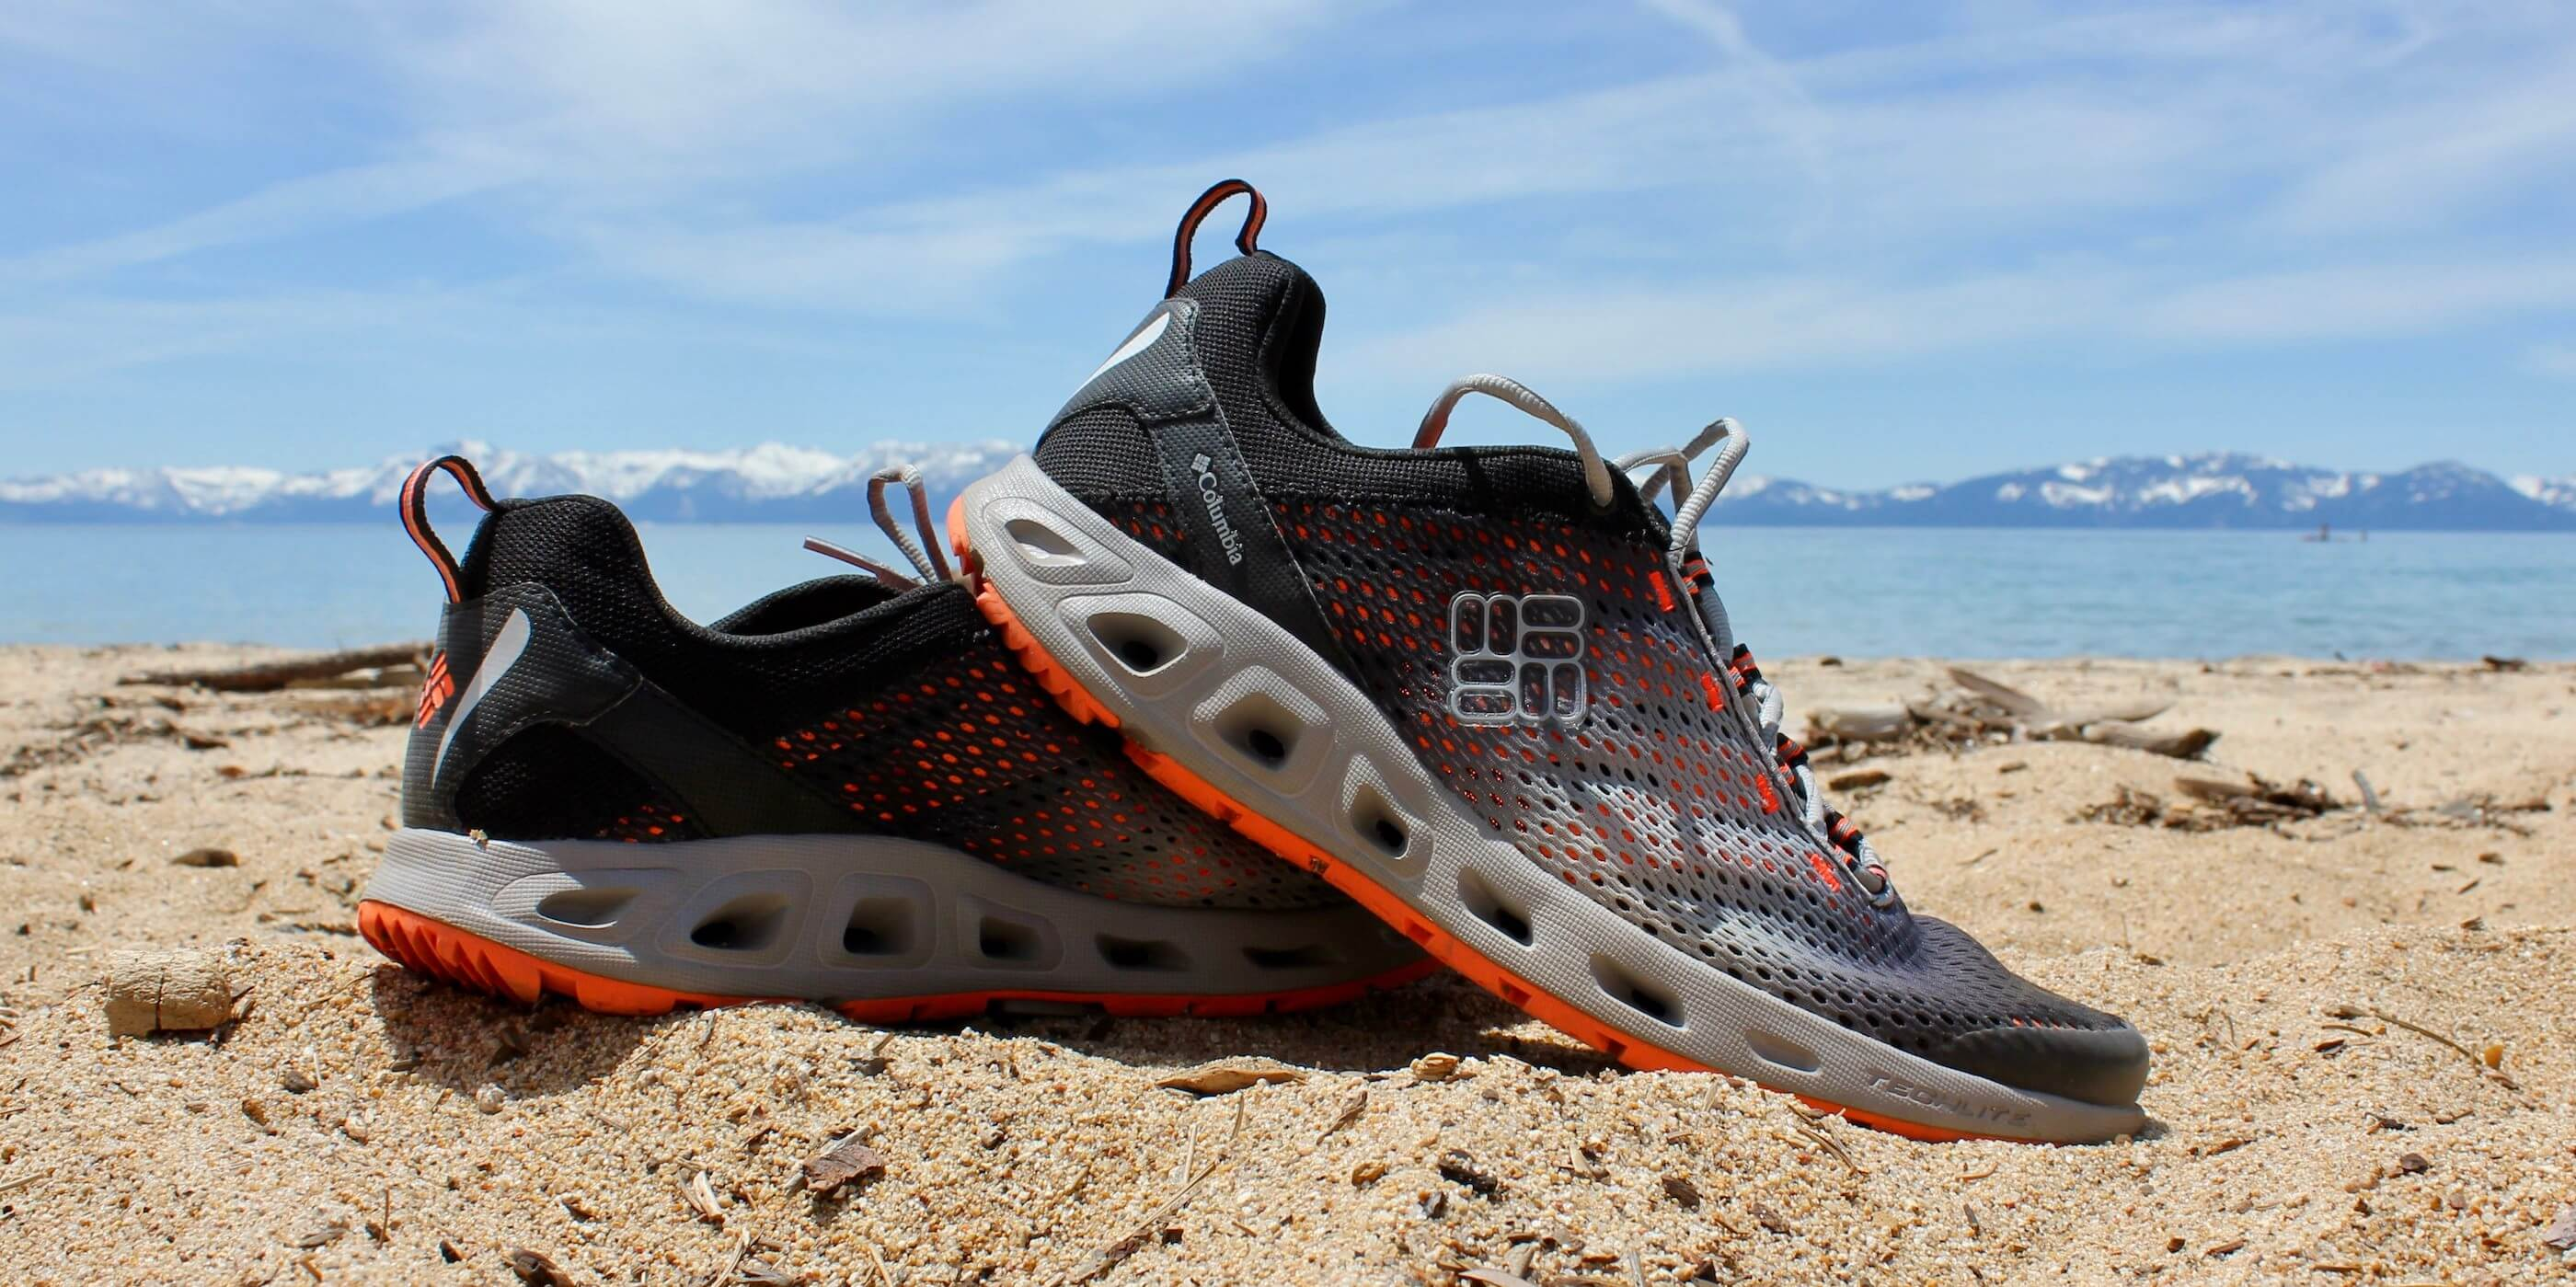 f142863aec7 This best water shoe image shows the excellent Columbia Drainmaker III  water shoe at Lake Tahoe